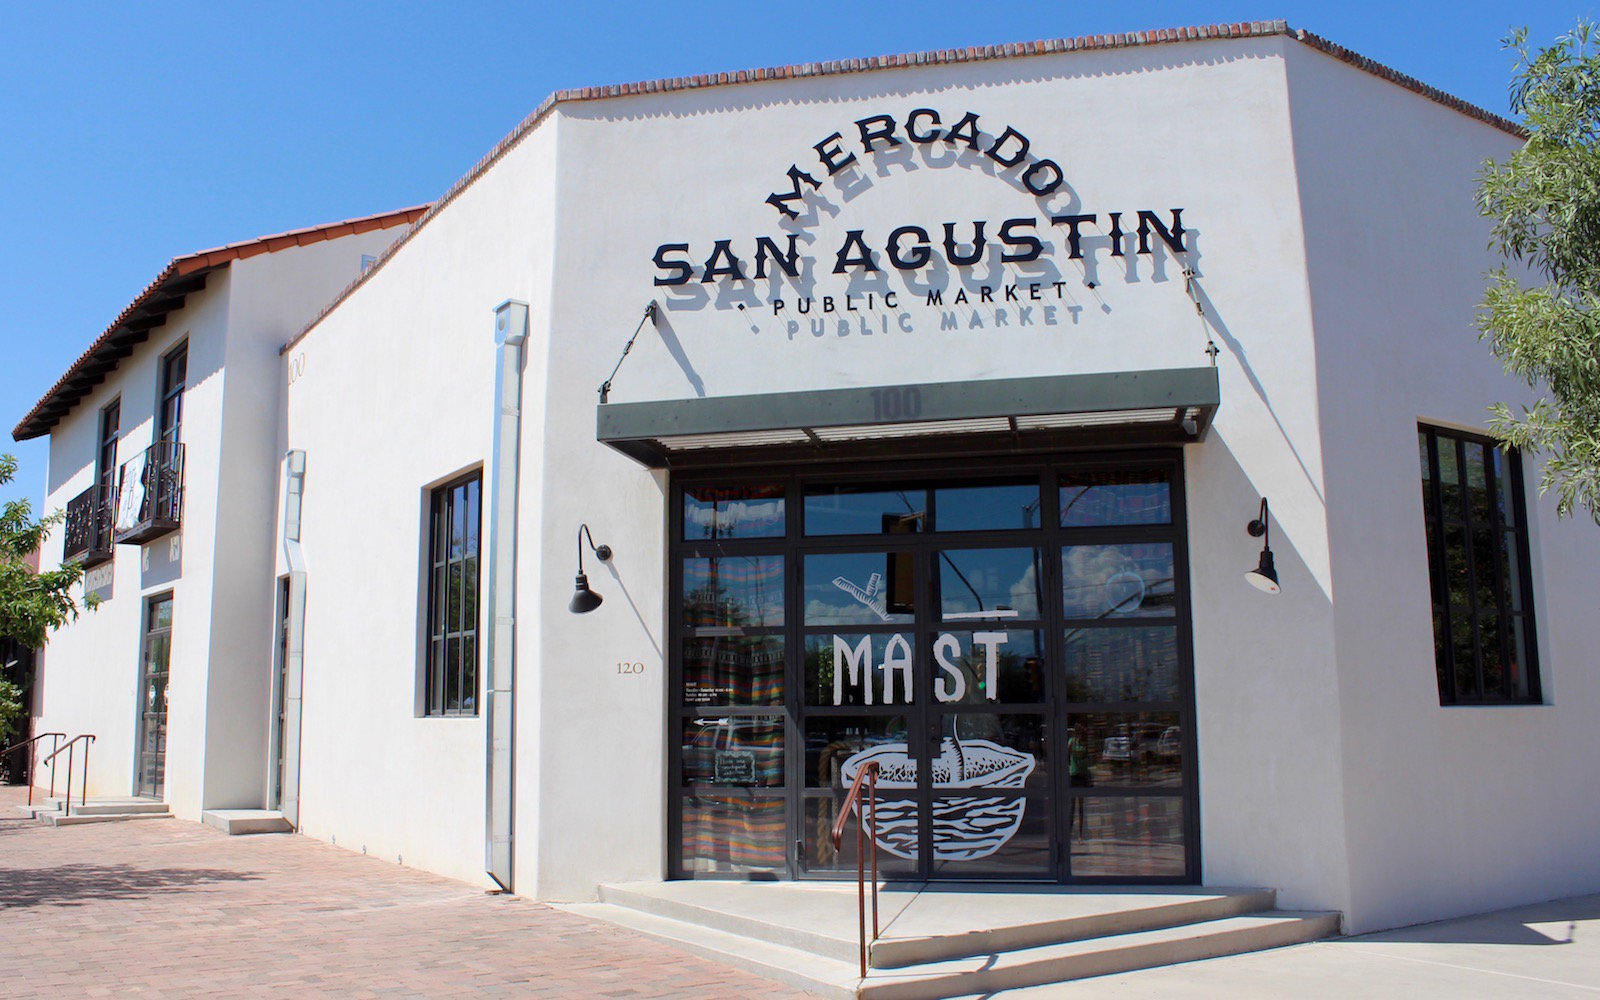 Mercado San Agustin in Tucson, Arizona